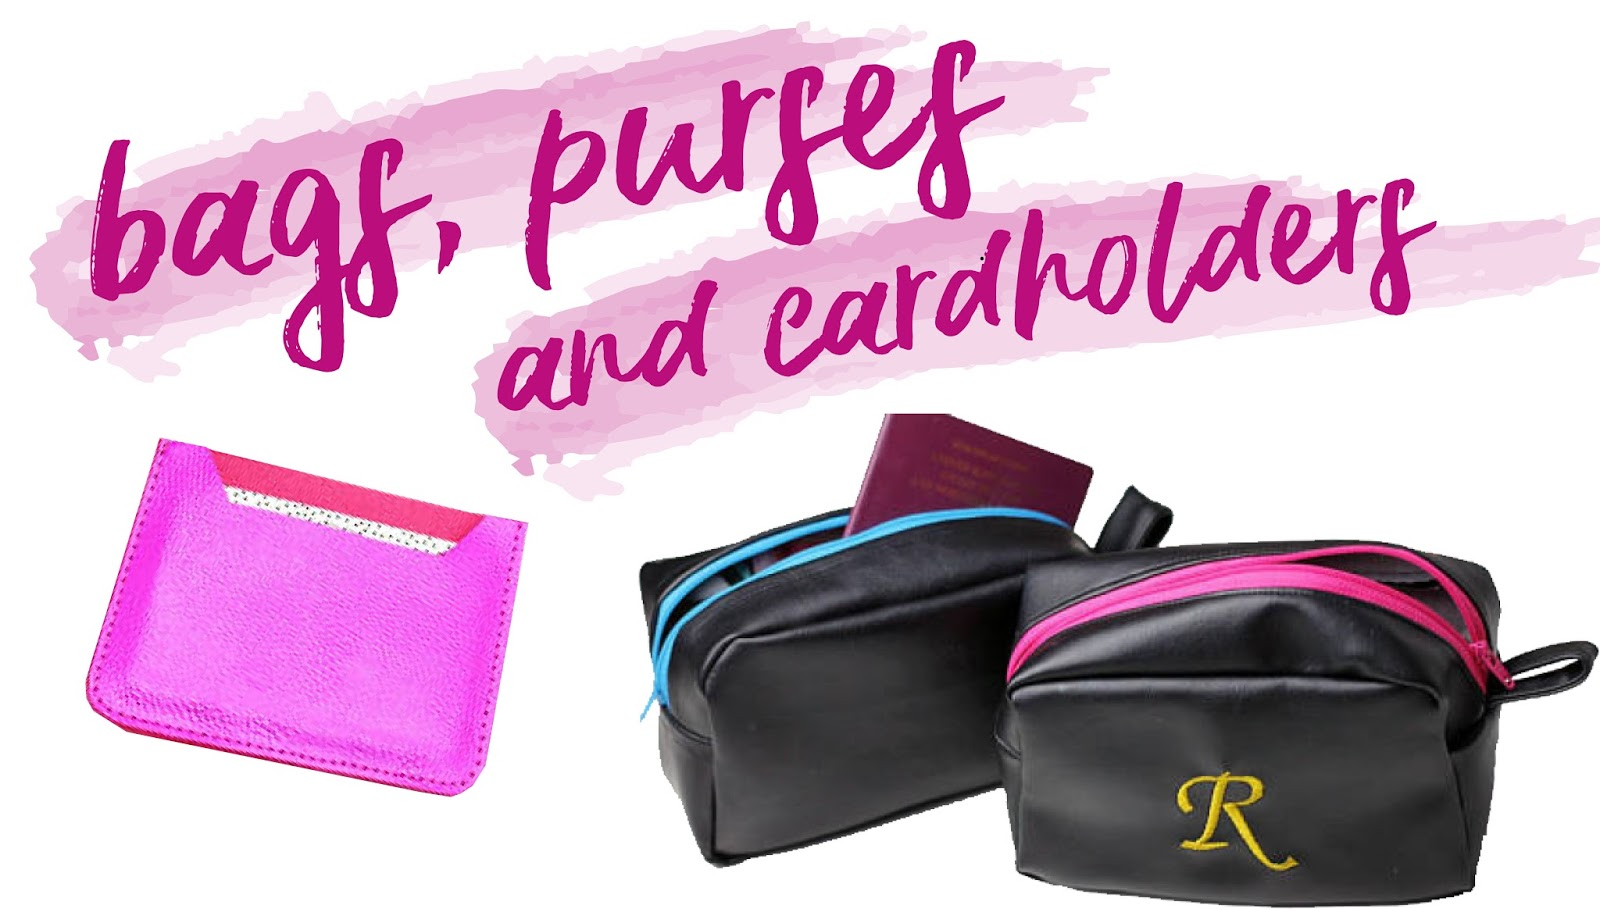 faux leather bags, purses and cardholders from small businesses Christmas gift guide